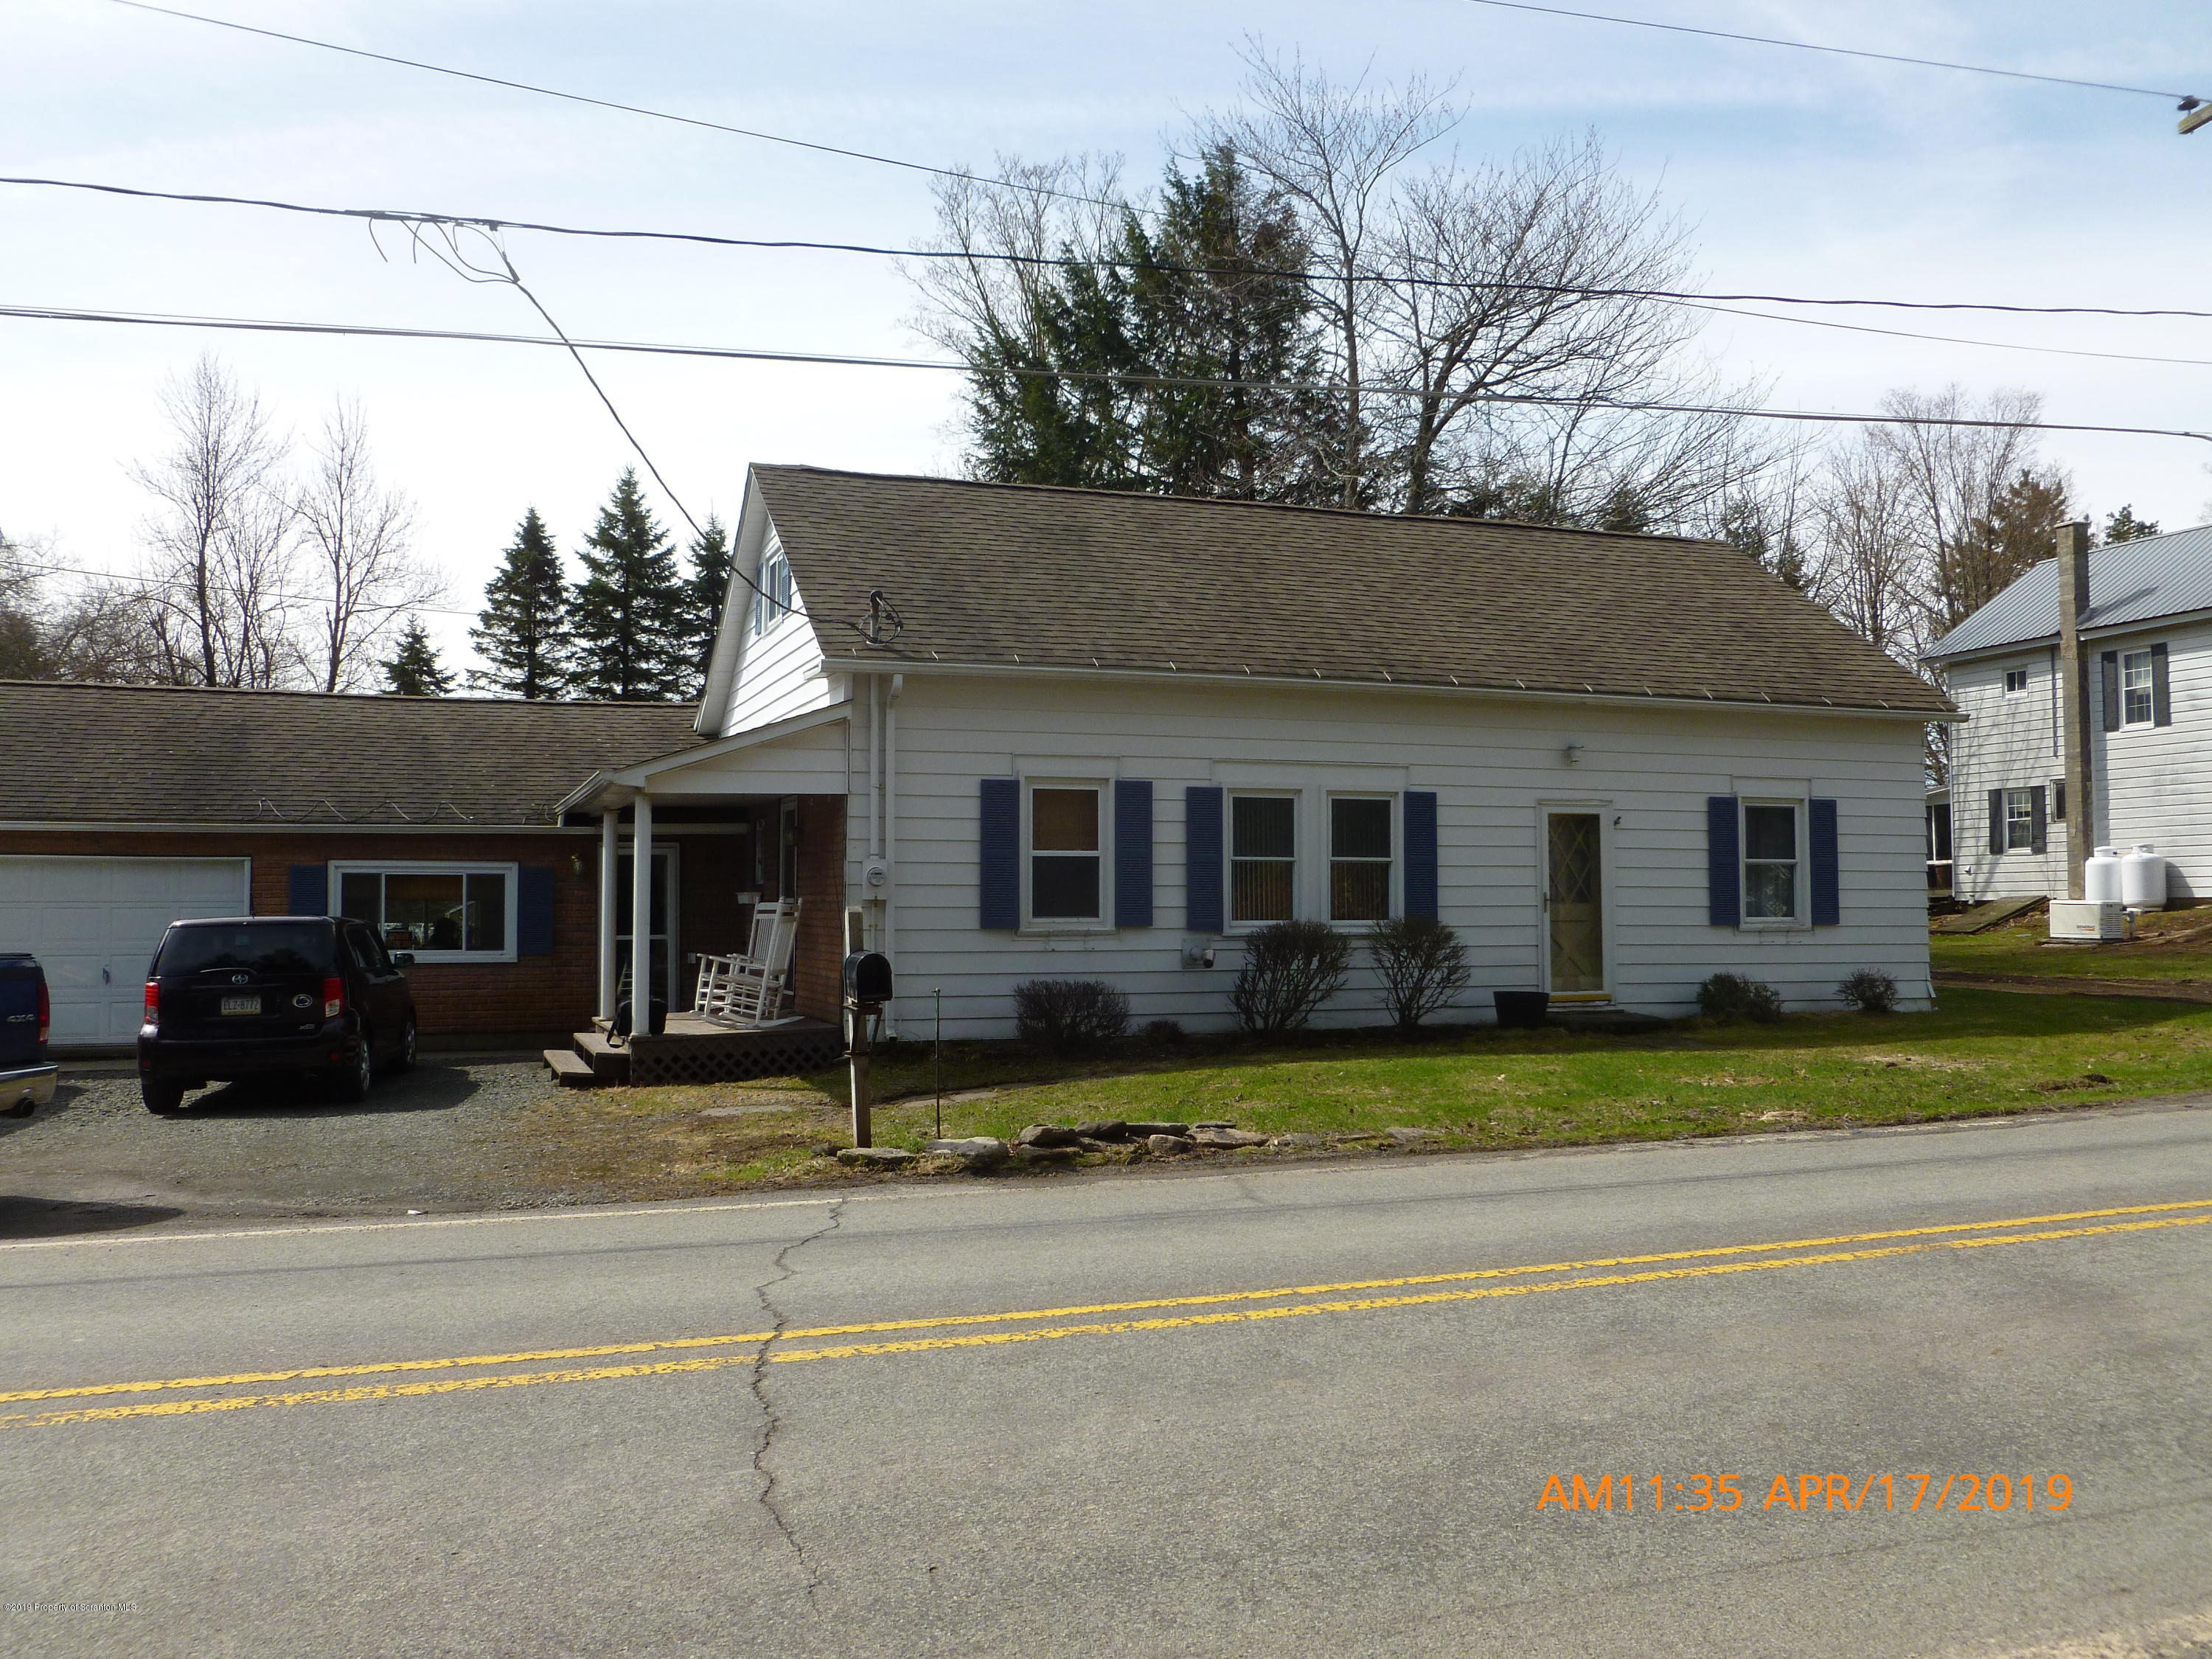 402 Great Bend Turnpike, Pleasant Mount, Pennsylvania 18453, 4 Bedrooms Bedrooms, 6 Rooms Rooms,1 BathroomBathrooms,Single Family,For Sale,Great Bend Turnpike,19-1716